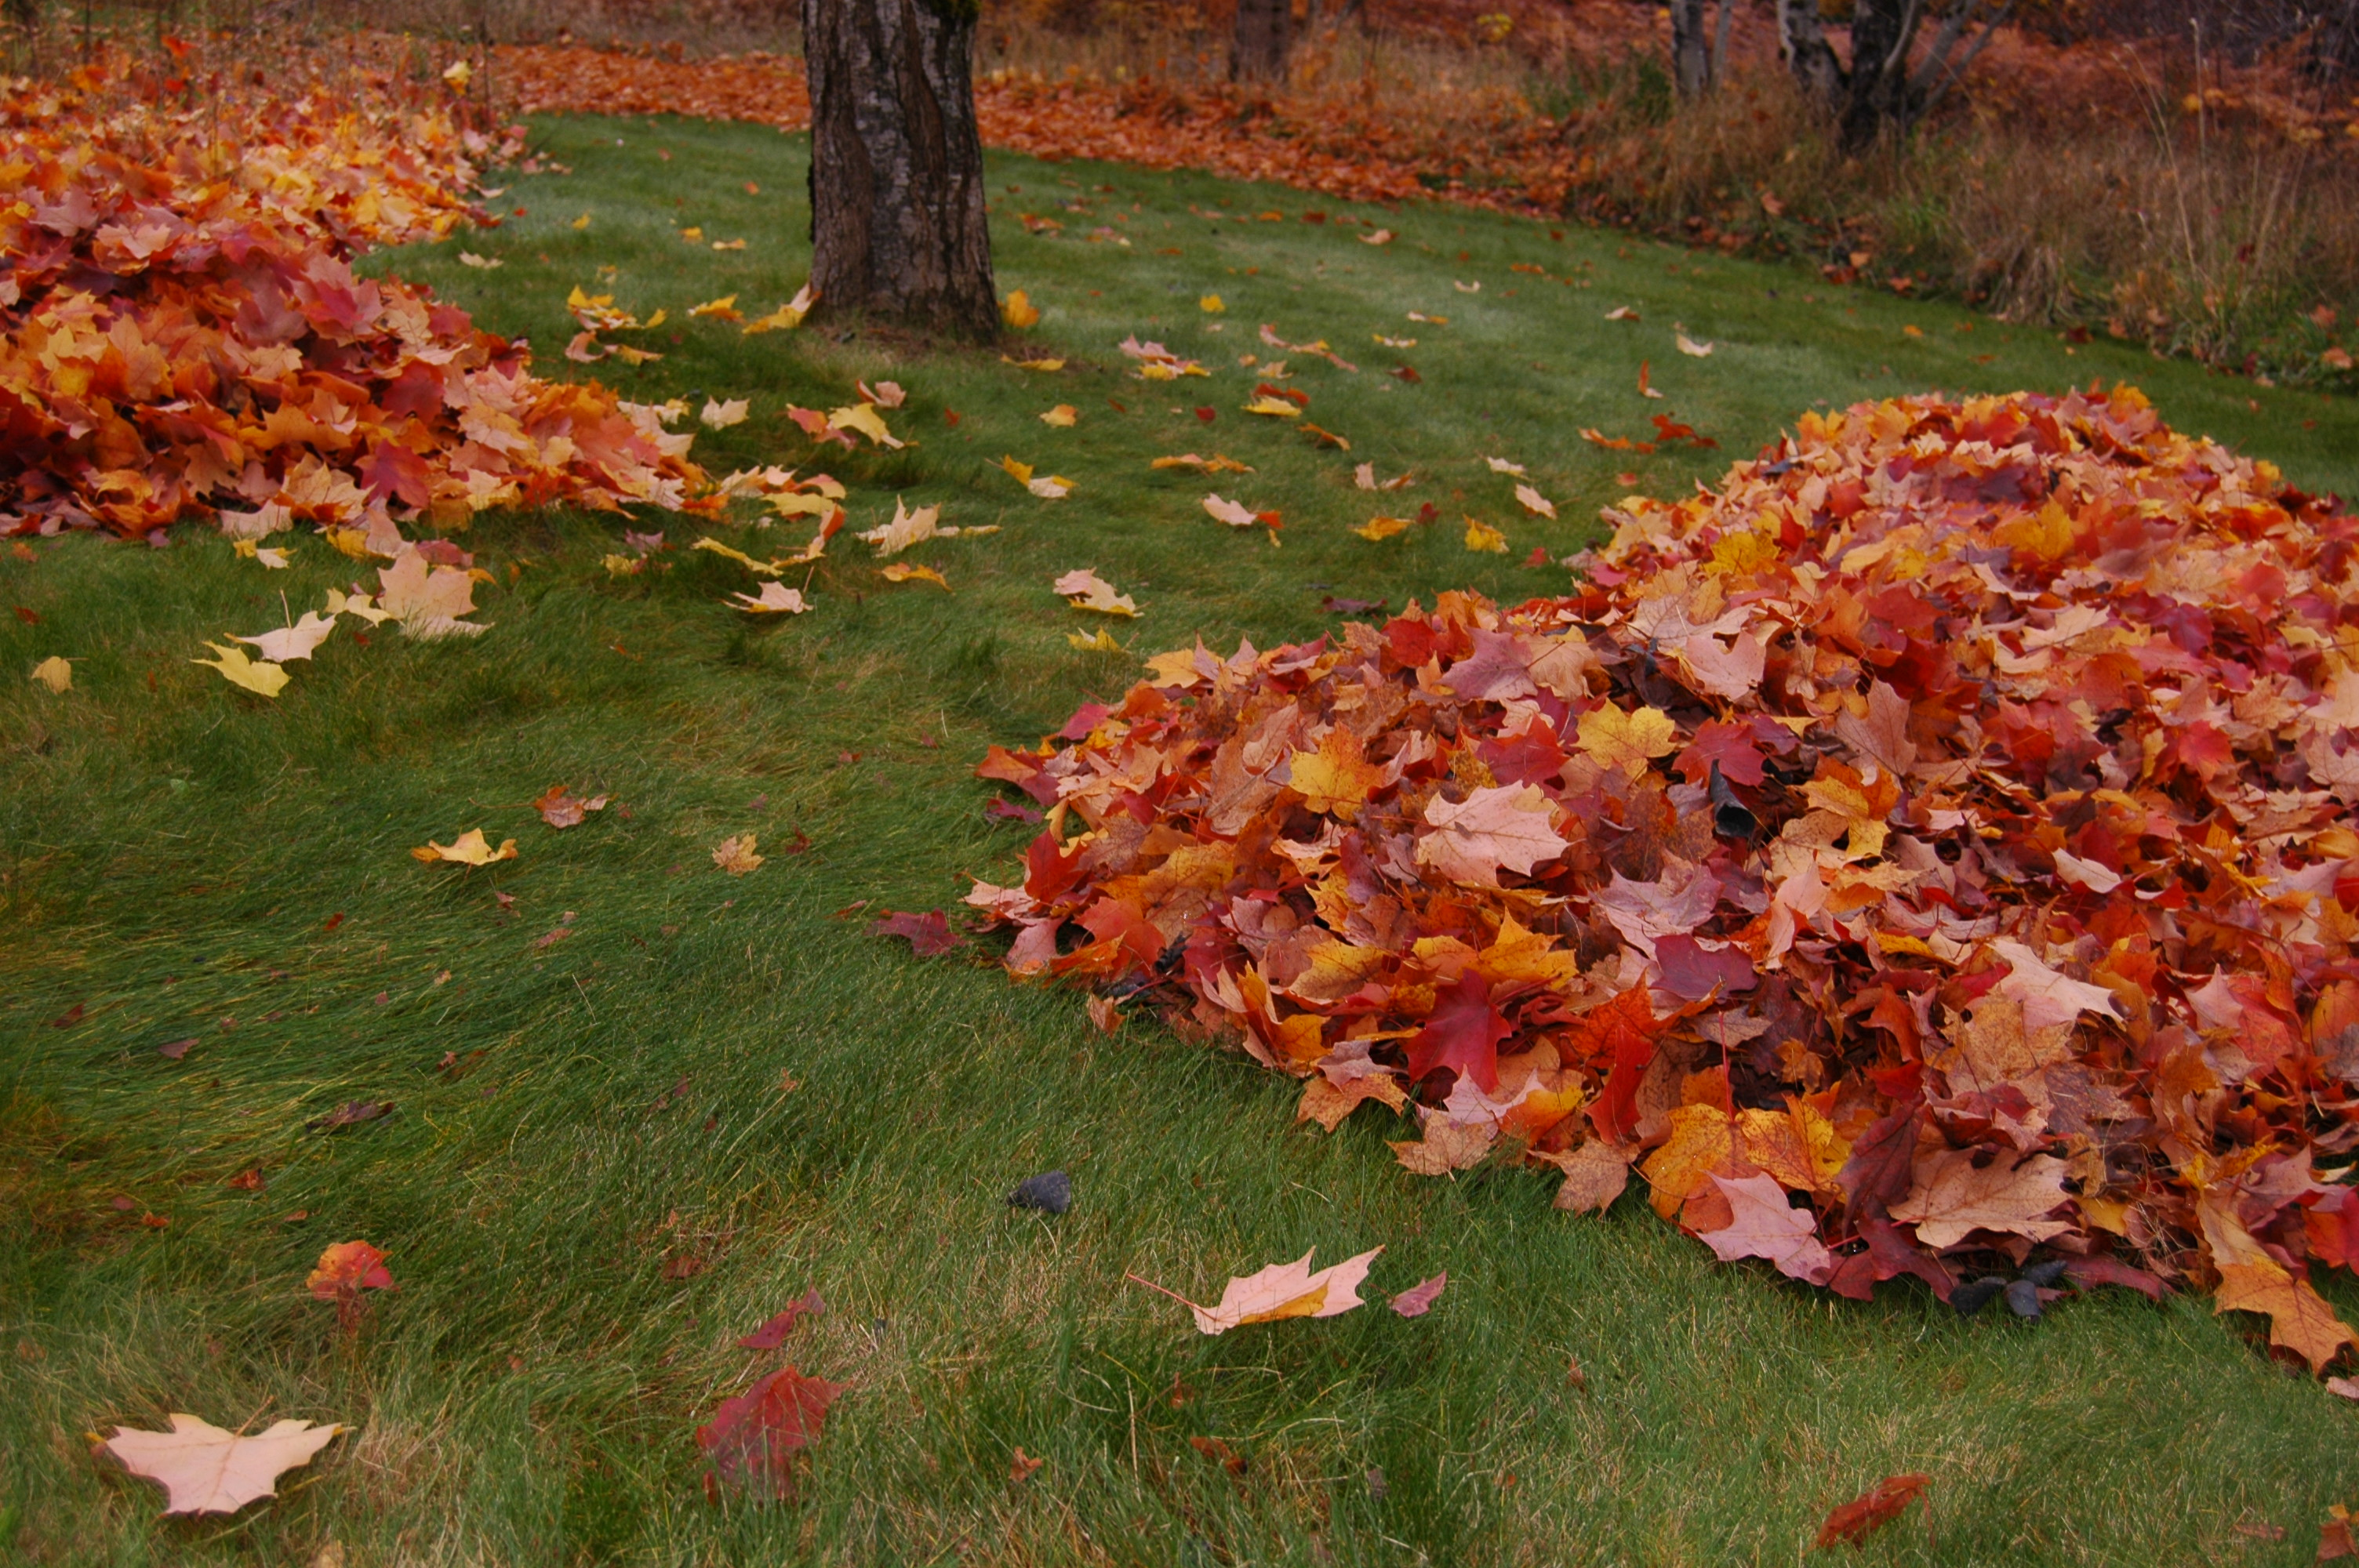 Piles of beautiful autumn red and orange leaves, via Good Blood Bad Blood